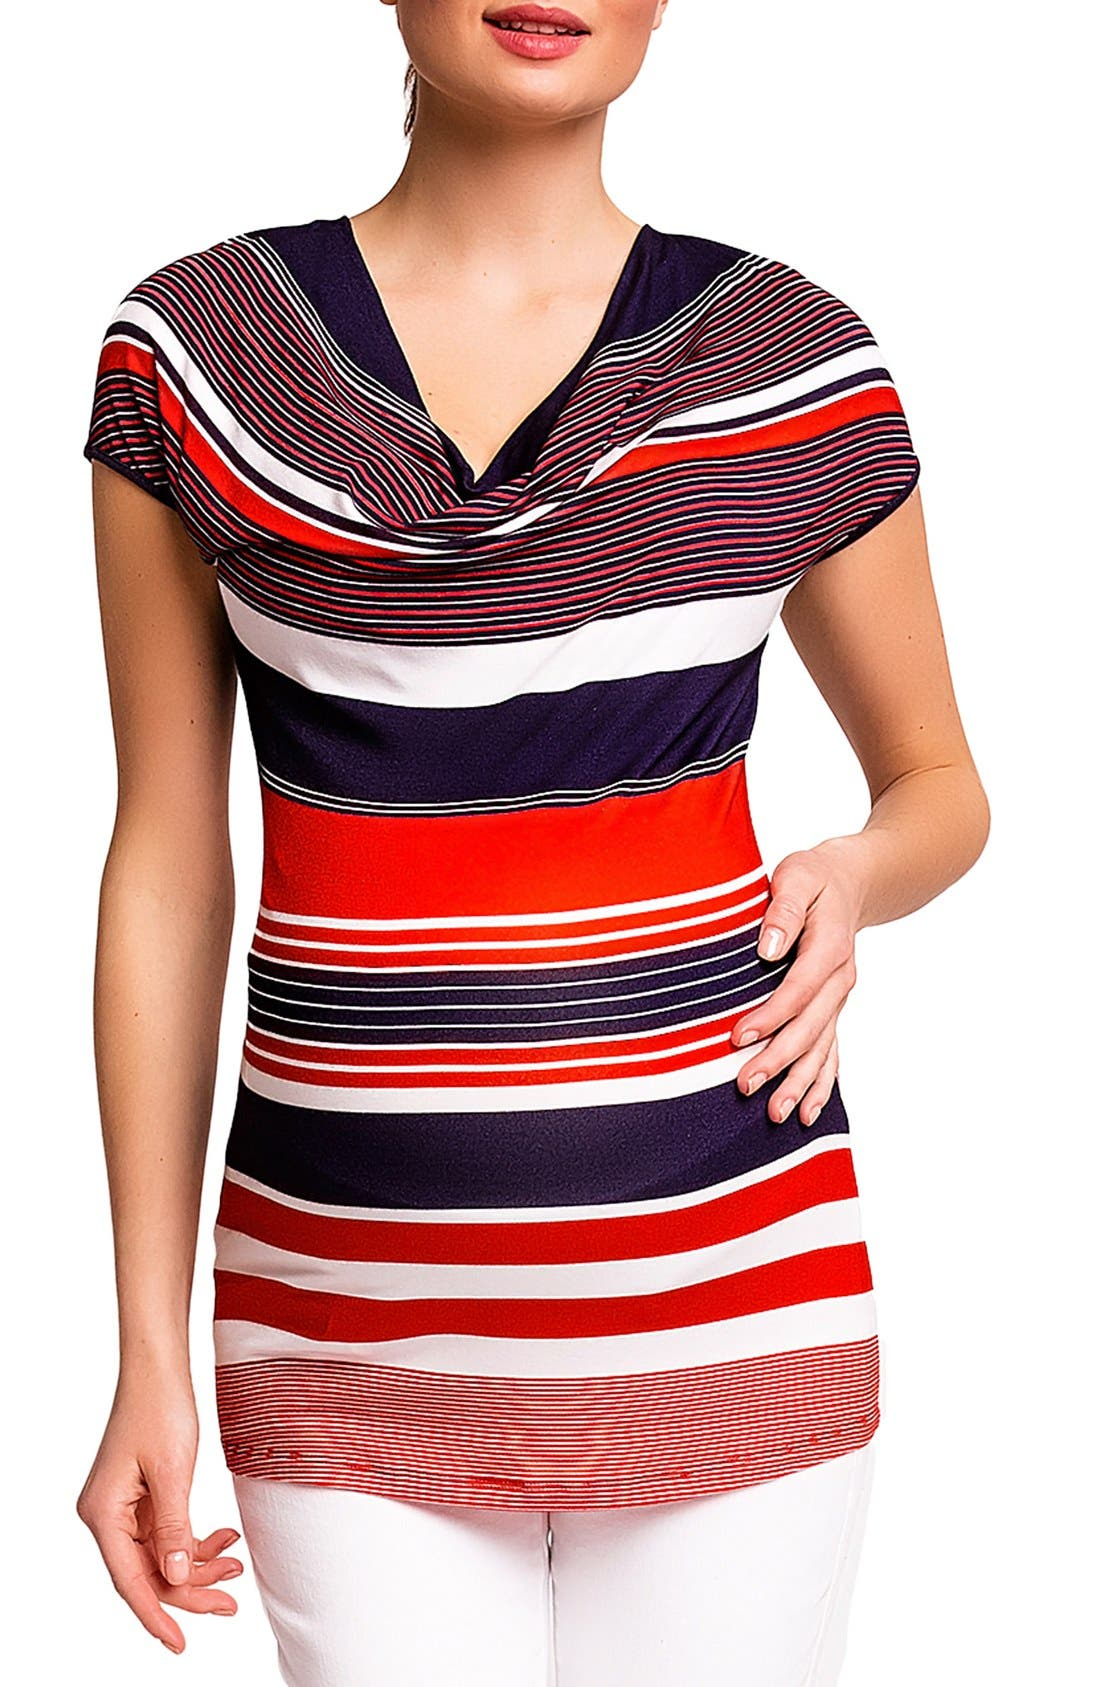 'Ginestra' Maternity/Nursing Tunic,                         Main,                         color, Red/Blue Stripes